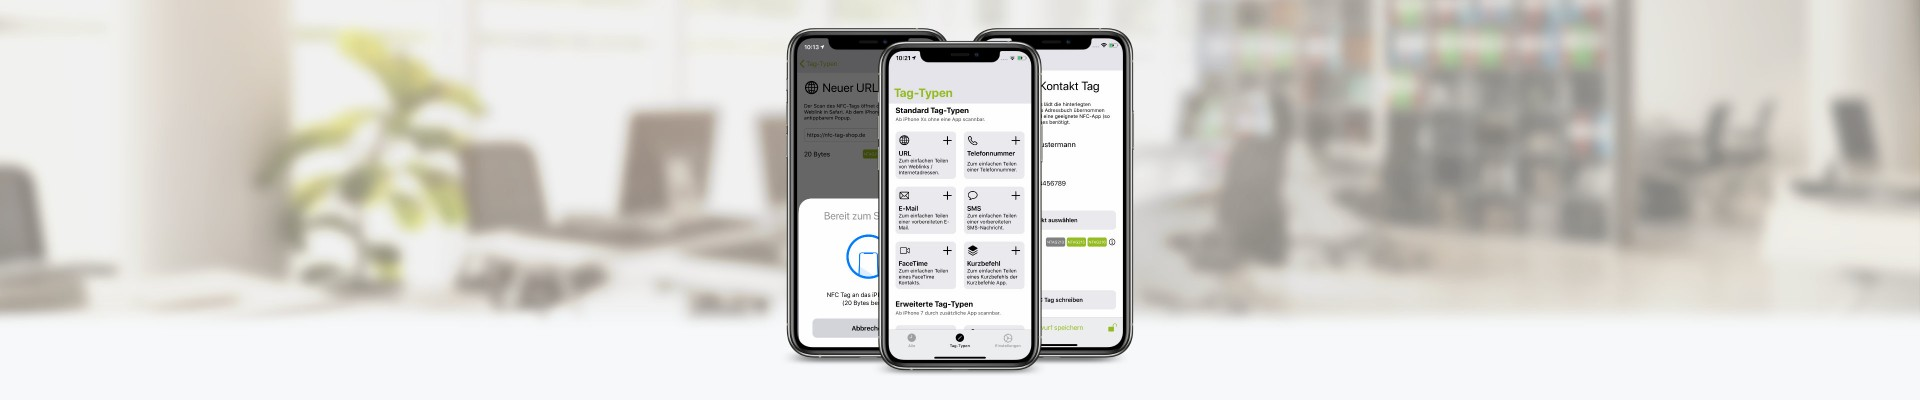 NFC21 Tools for iOS - Tool for writing and reading NFC tags